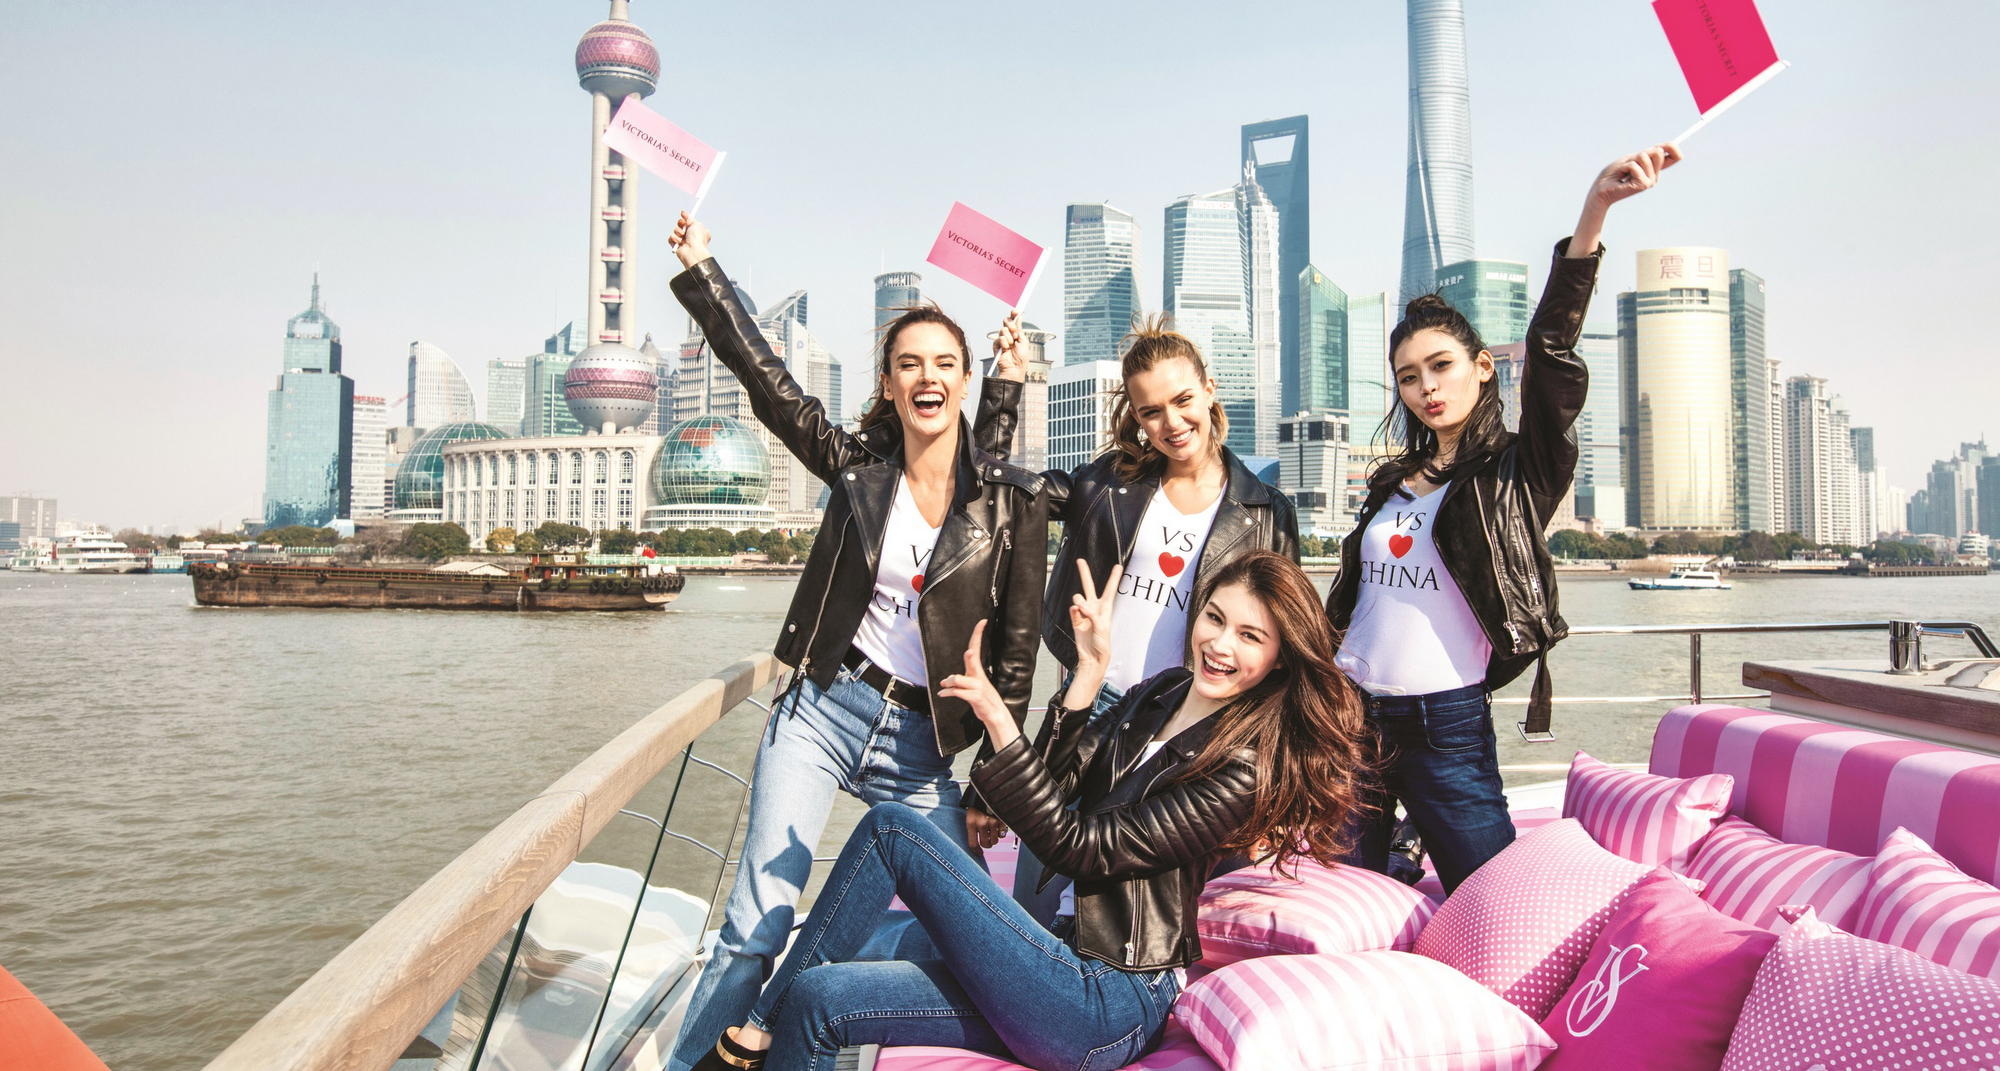 Victoria's Secret Fashion Show 2017 will be in Shanghai!